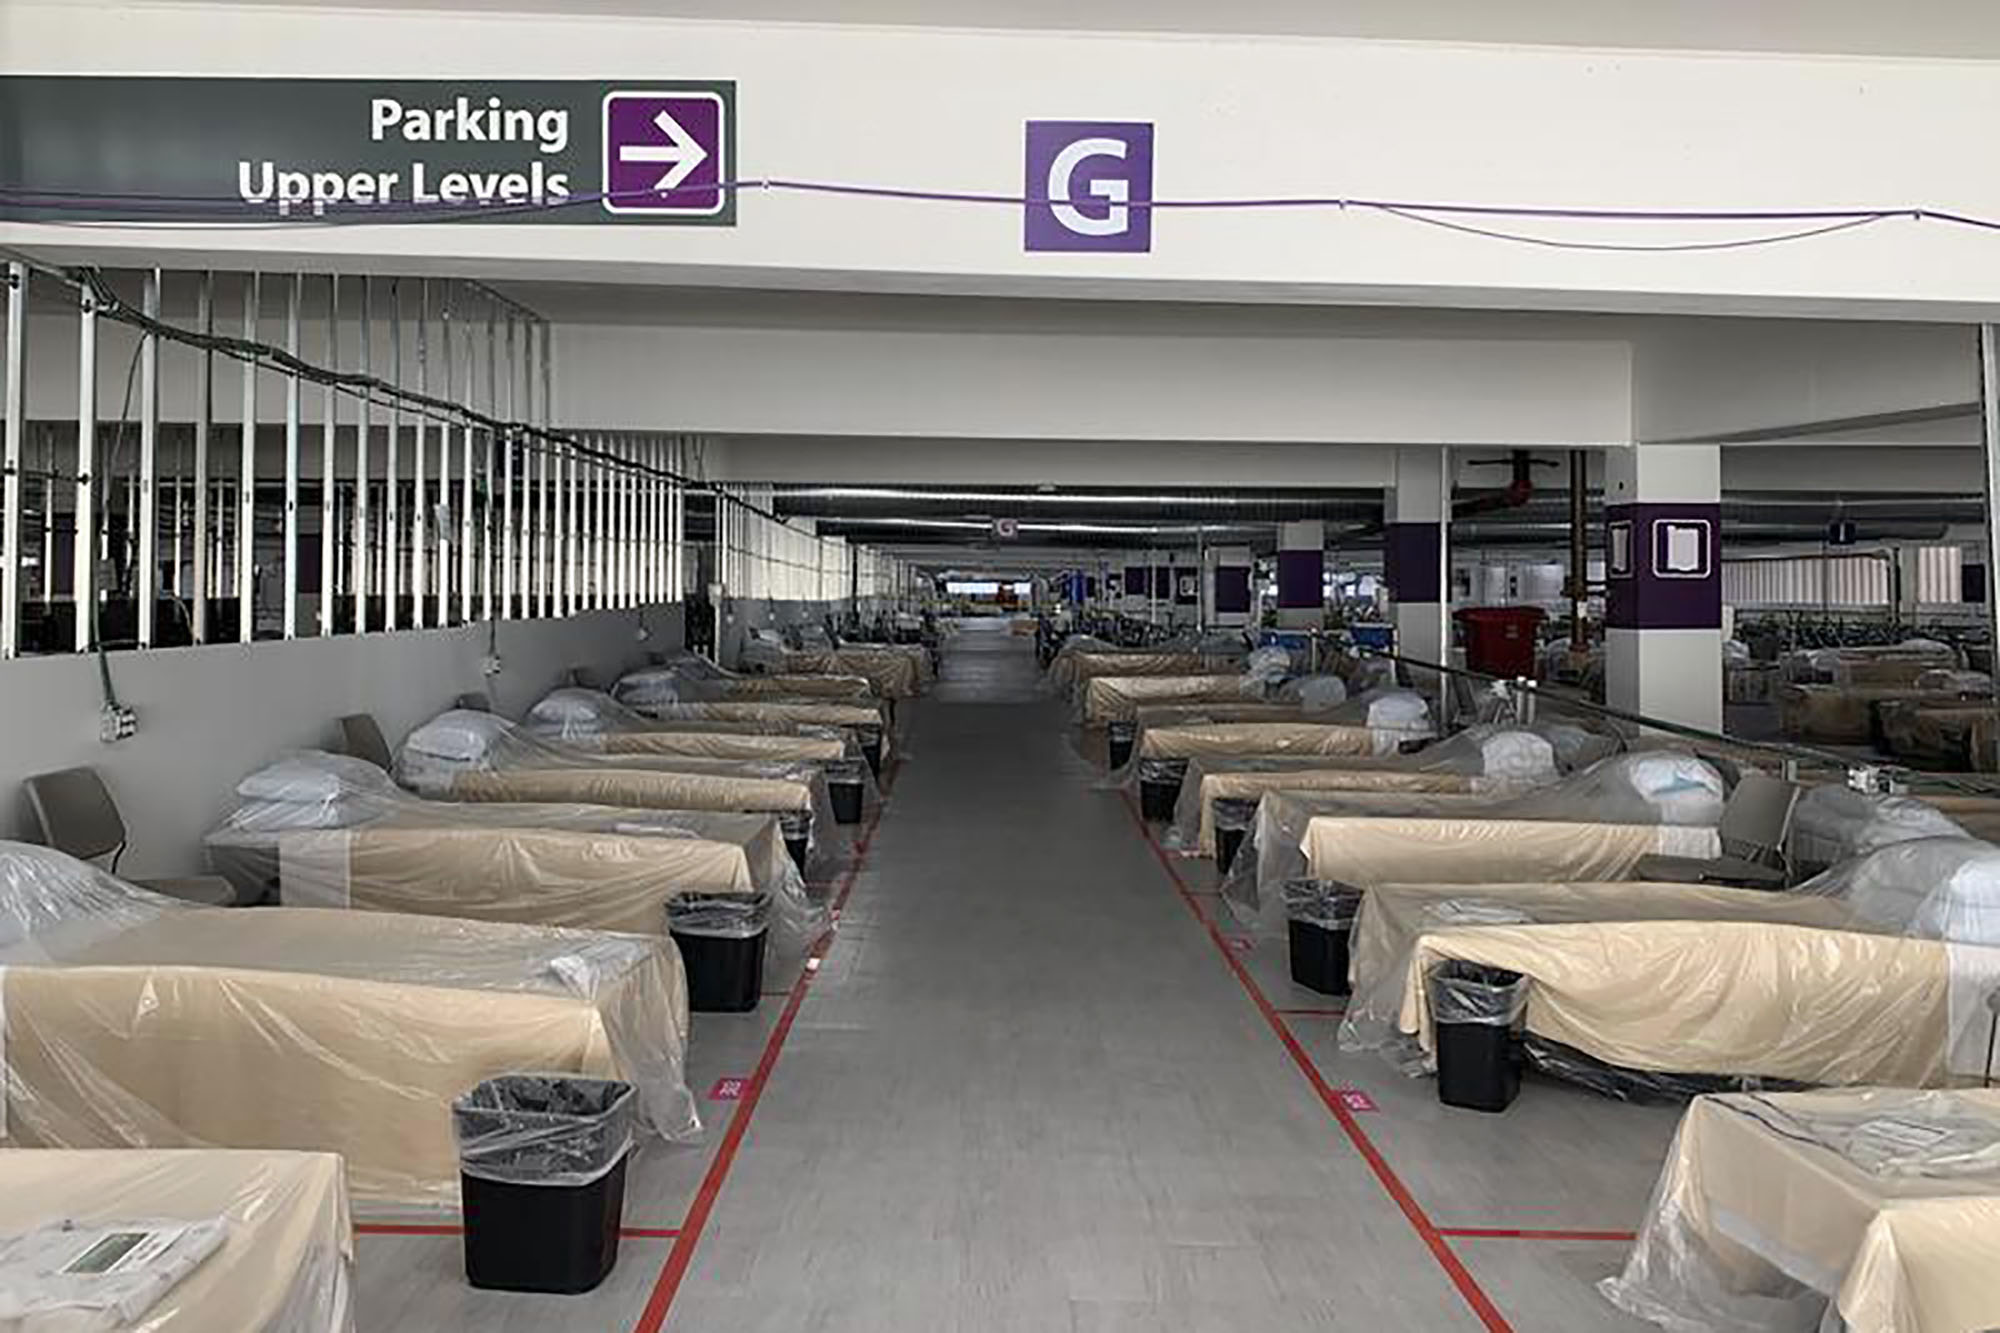 Hospital beds are pictured inside Renown Regional Medical Center's parking garage, which has been transformed into an alternative care site for Covid-19 patients, in Reno, Nevada, on November 11.